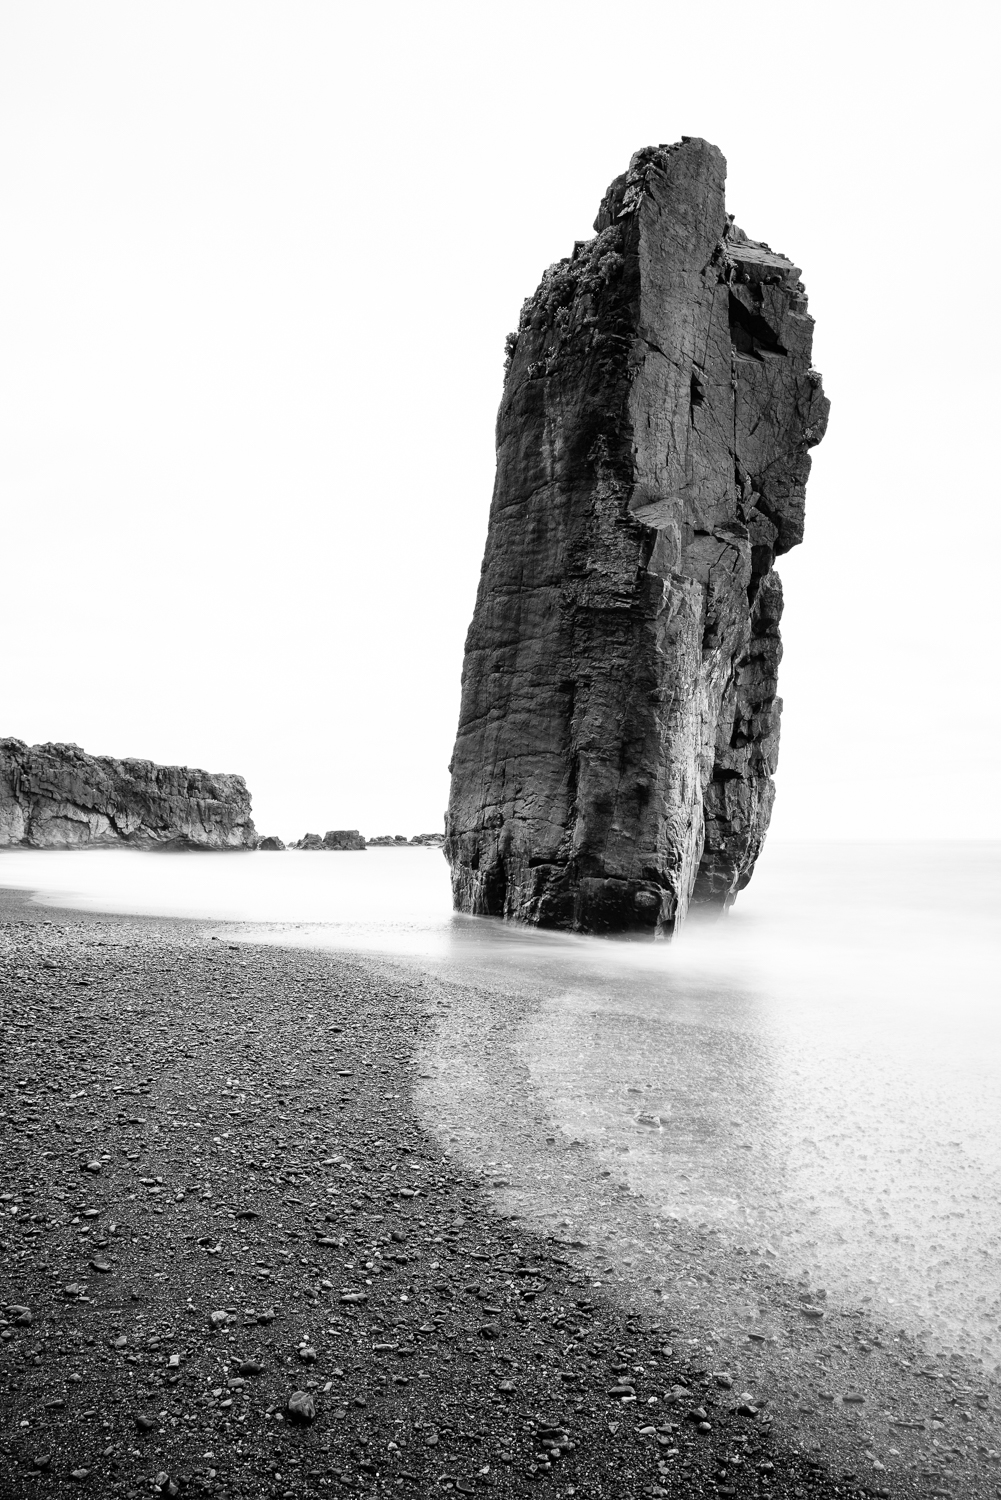 Leaning rock of Iceland?